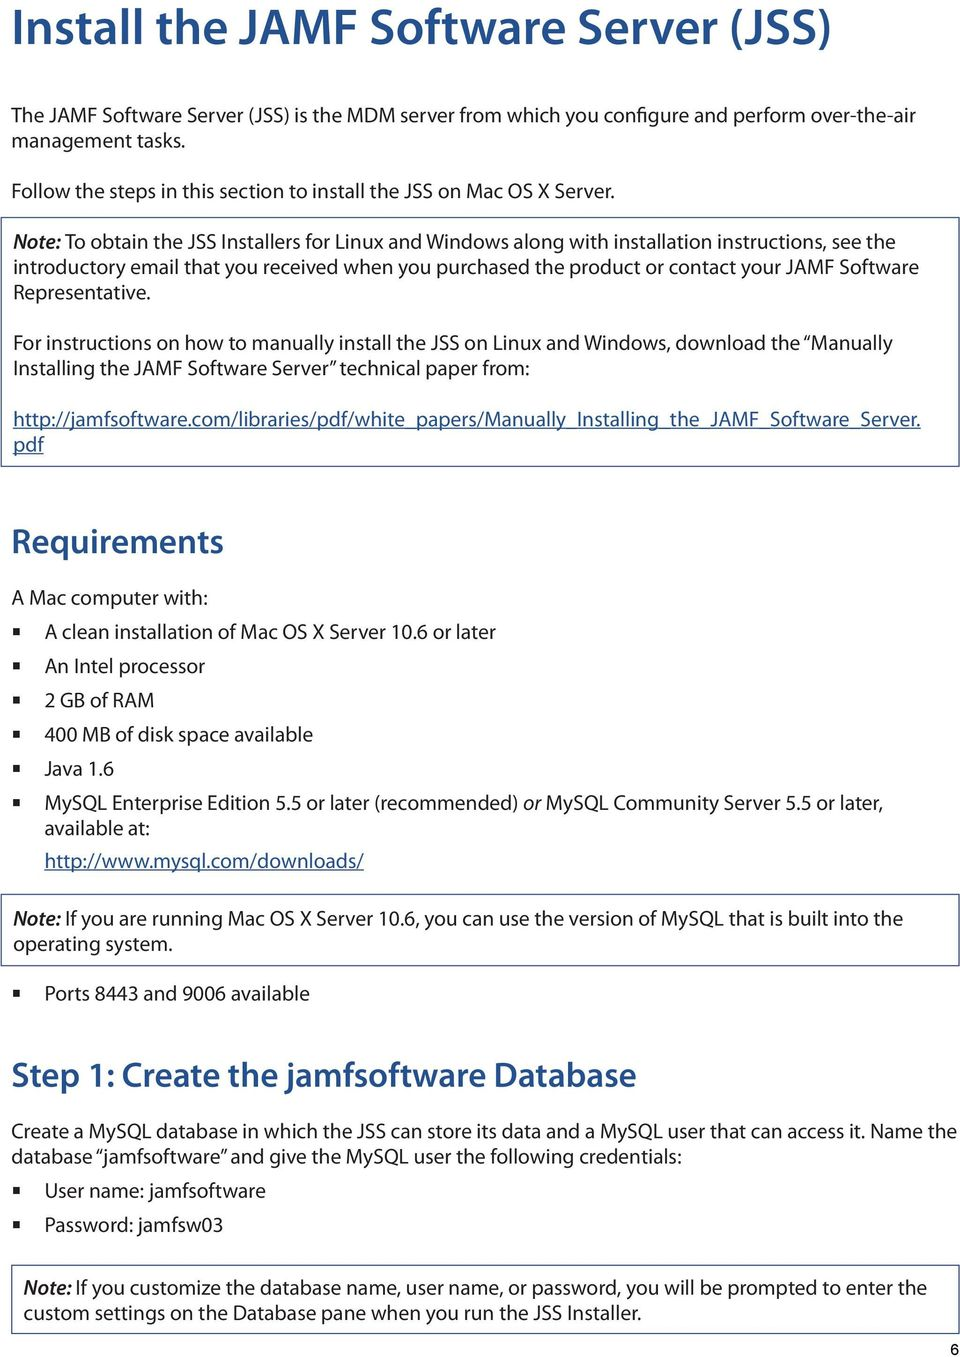 Note: To obtain the JSS Installers for Linux and Windows along with installation instructions, see the introductory email that you received when you purchased the product or contact your JAMF